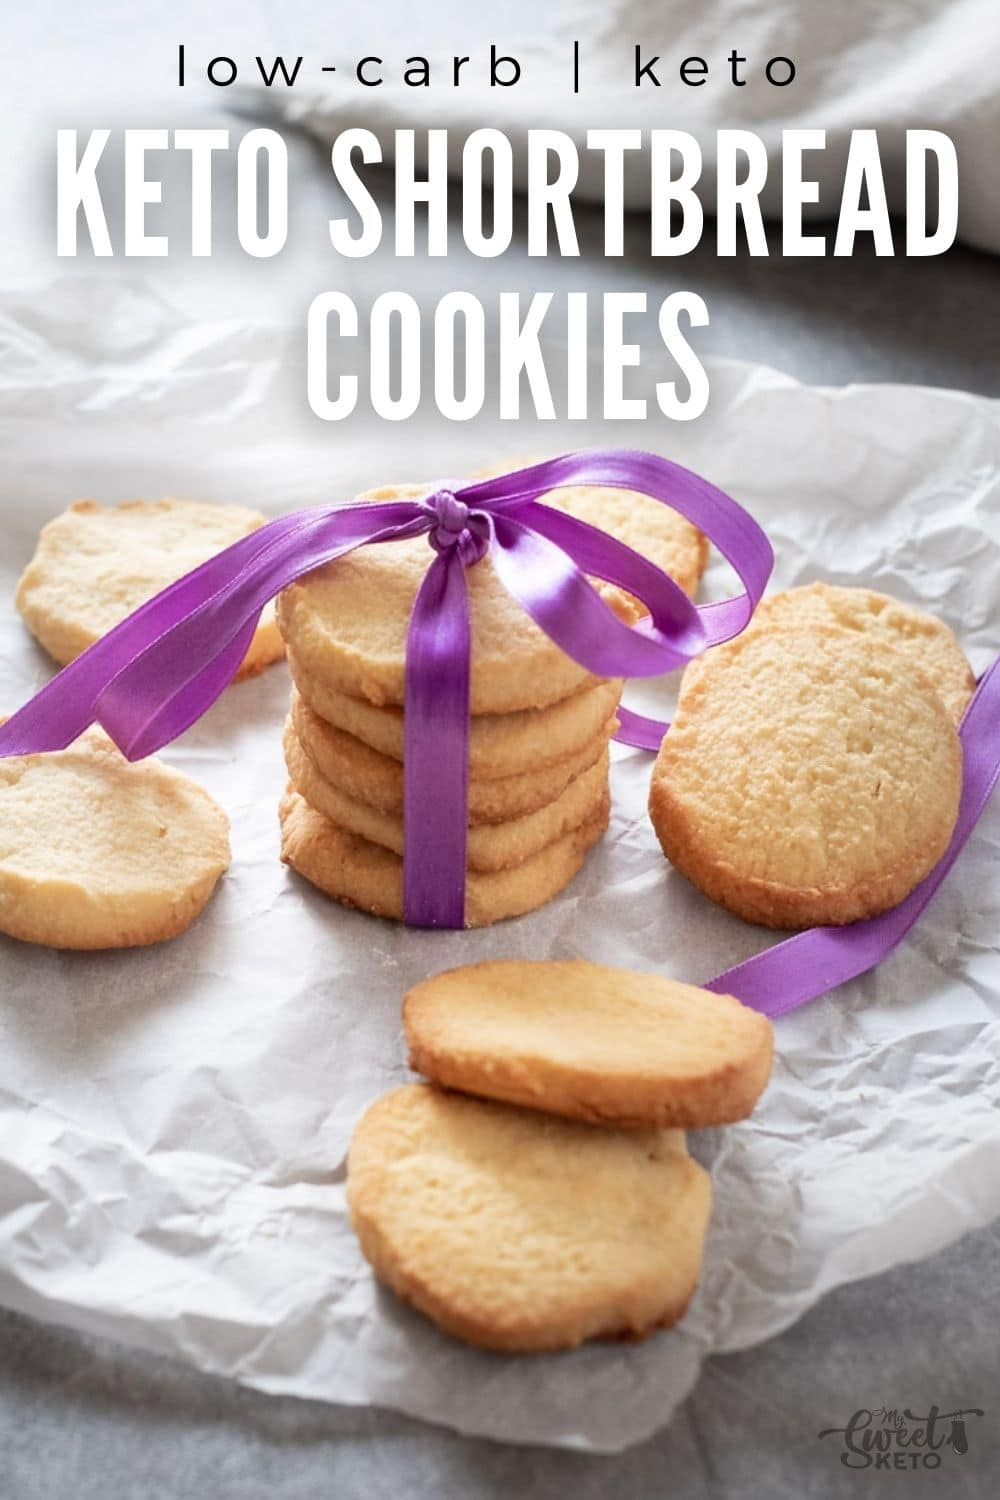 This is one of the most simple keto shortbread cookies recipes. Using only four main ingredients, these are a great treat despite simplicity! #keto #short #bread